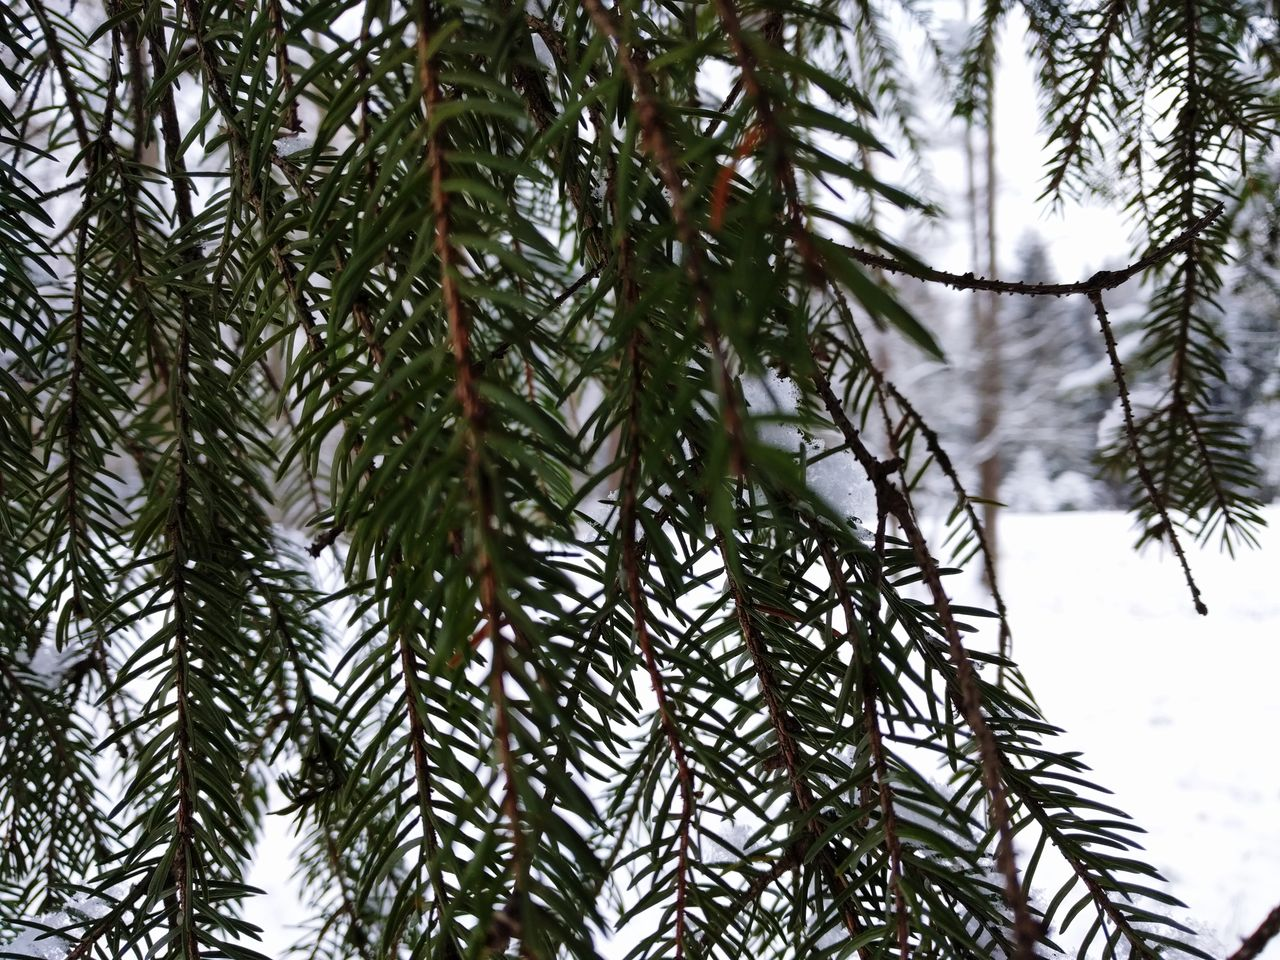 winter, nature, tree, cold temperature, focus on foreground, snow, day, pine tree, weather, growth, beauty in nature, outdoors, close-up, no people, green color, spruce tree, branch, fir tree, needle, sky